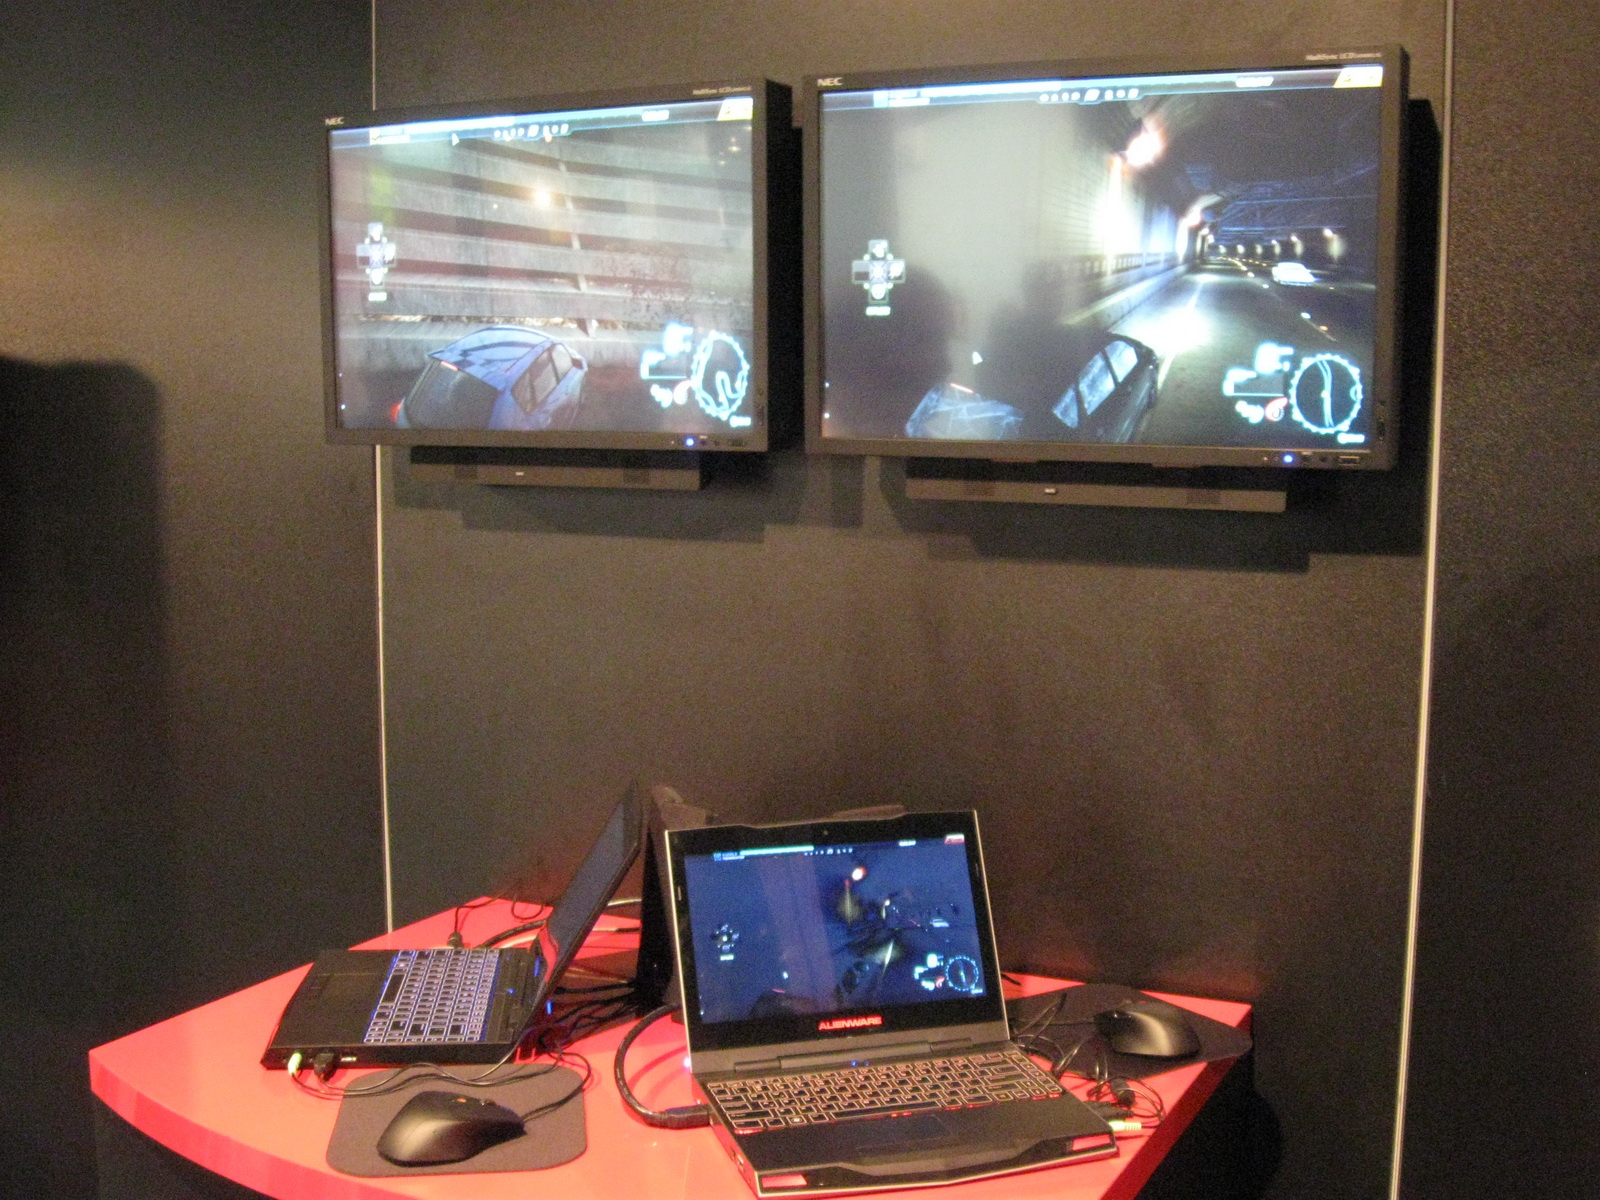 The Alienware M11x at the Verizon booth at CES 2011